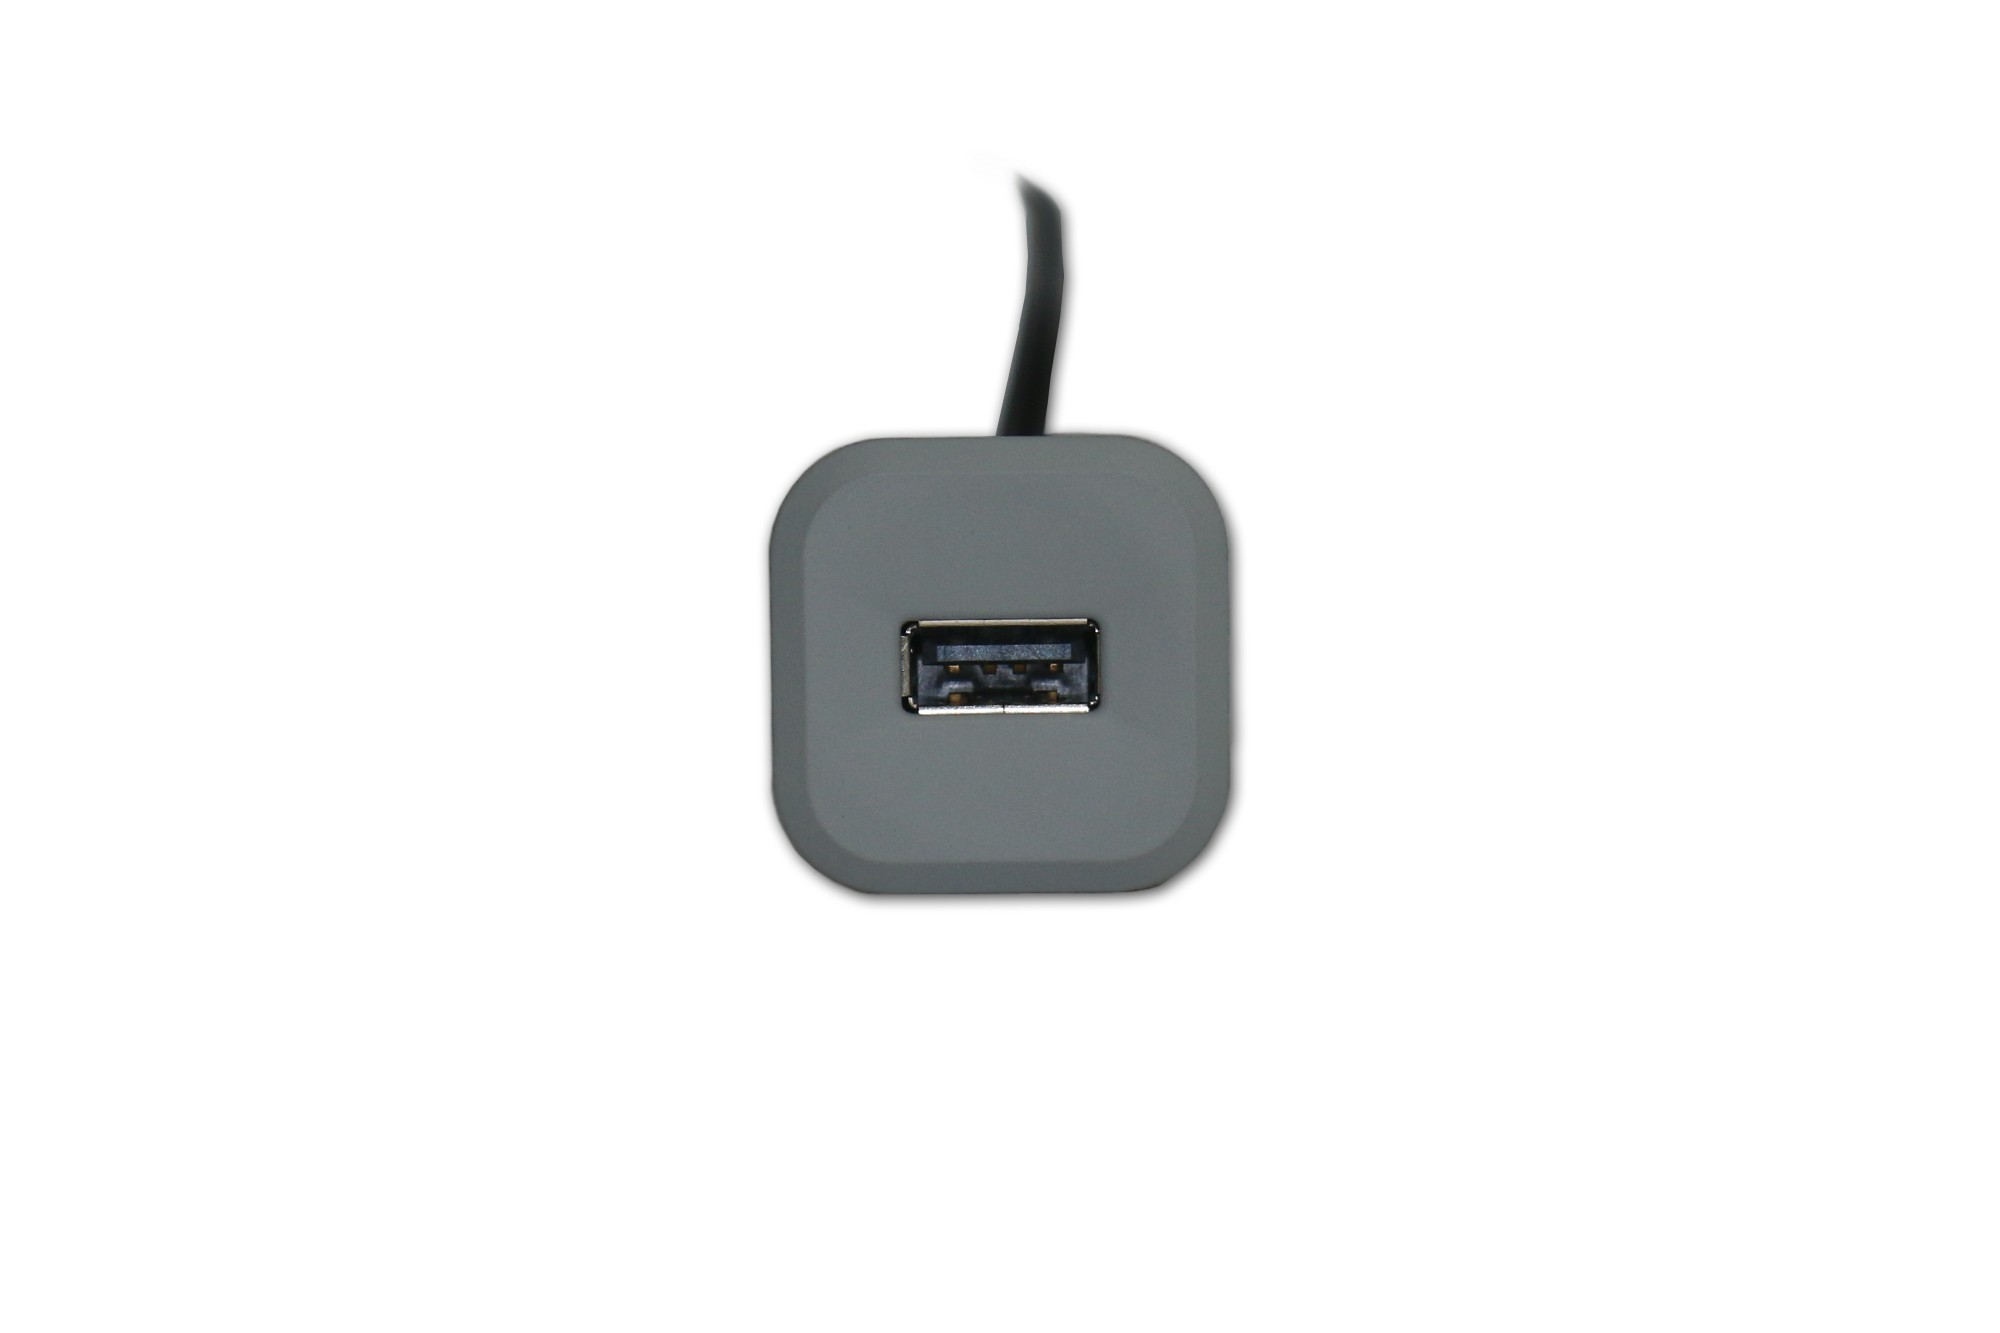 Mini Square USB Charger in Grey